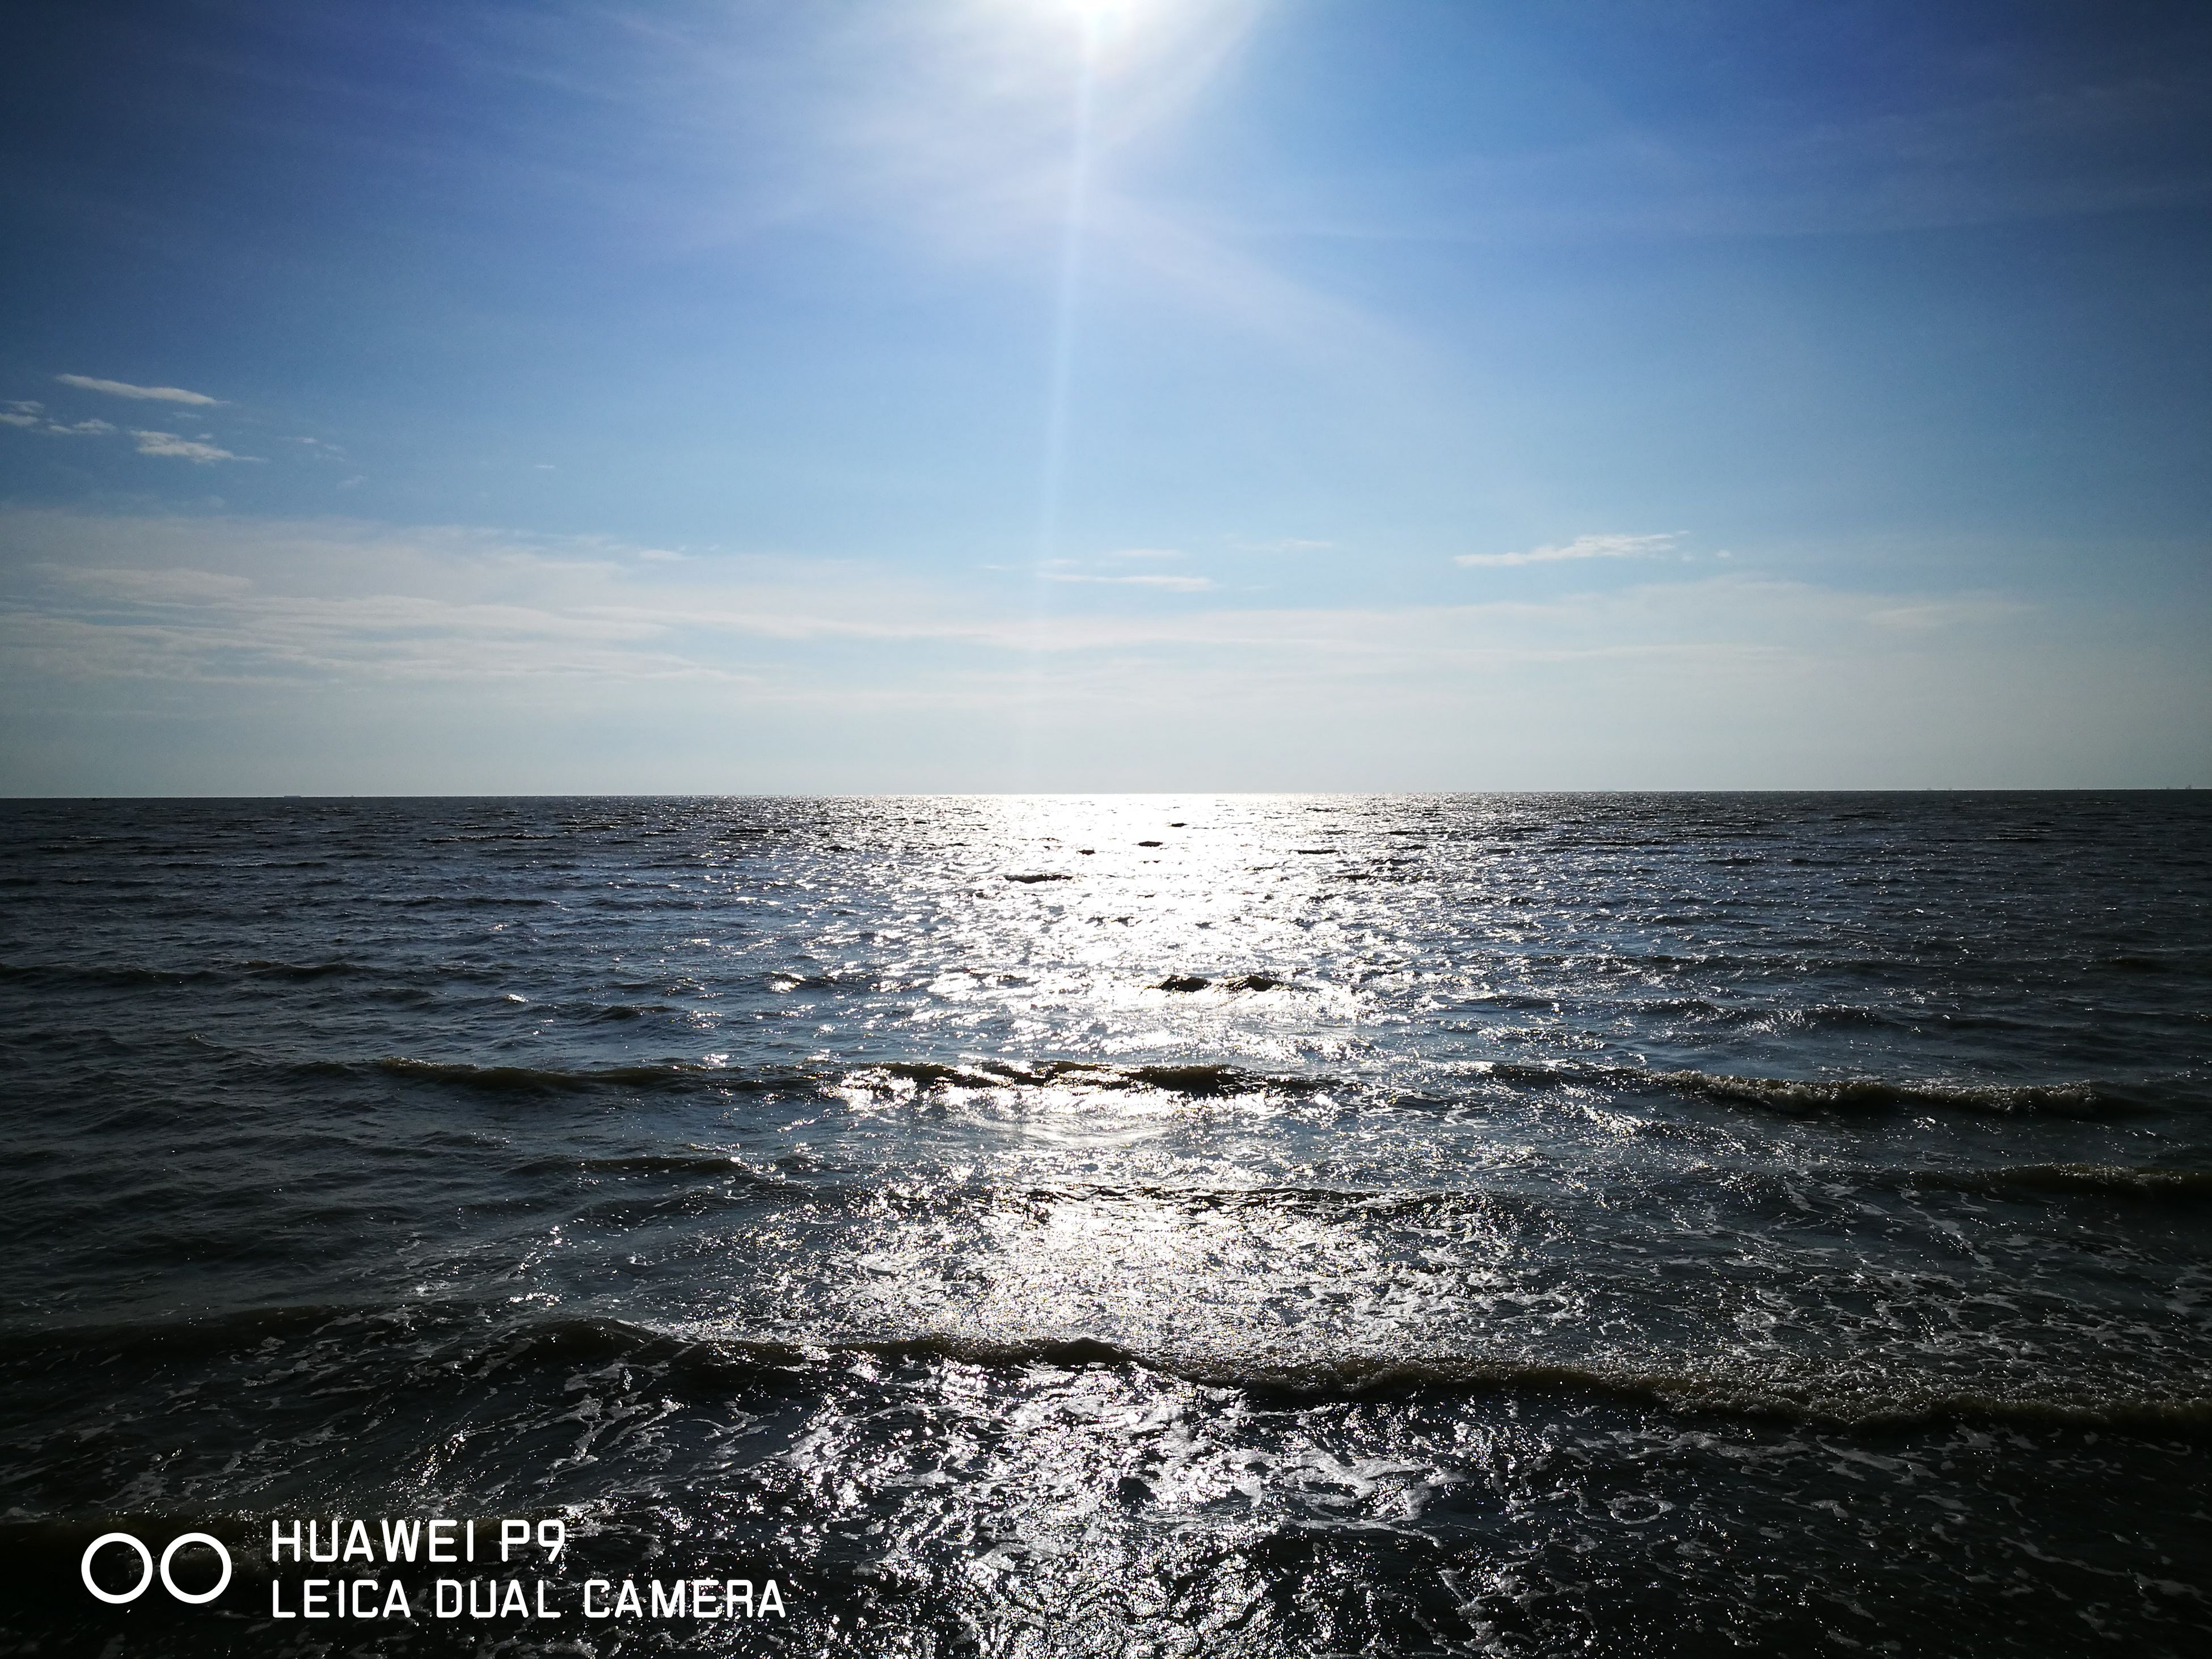 sea, sky, horizon over water, sunlight, nature, scenics, tranquility, beauty in nature, sun, no people, water, outdoors, day